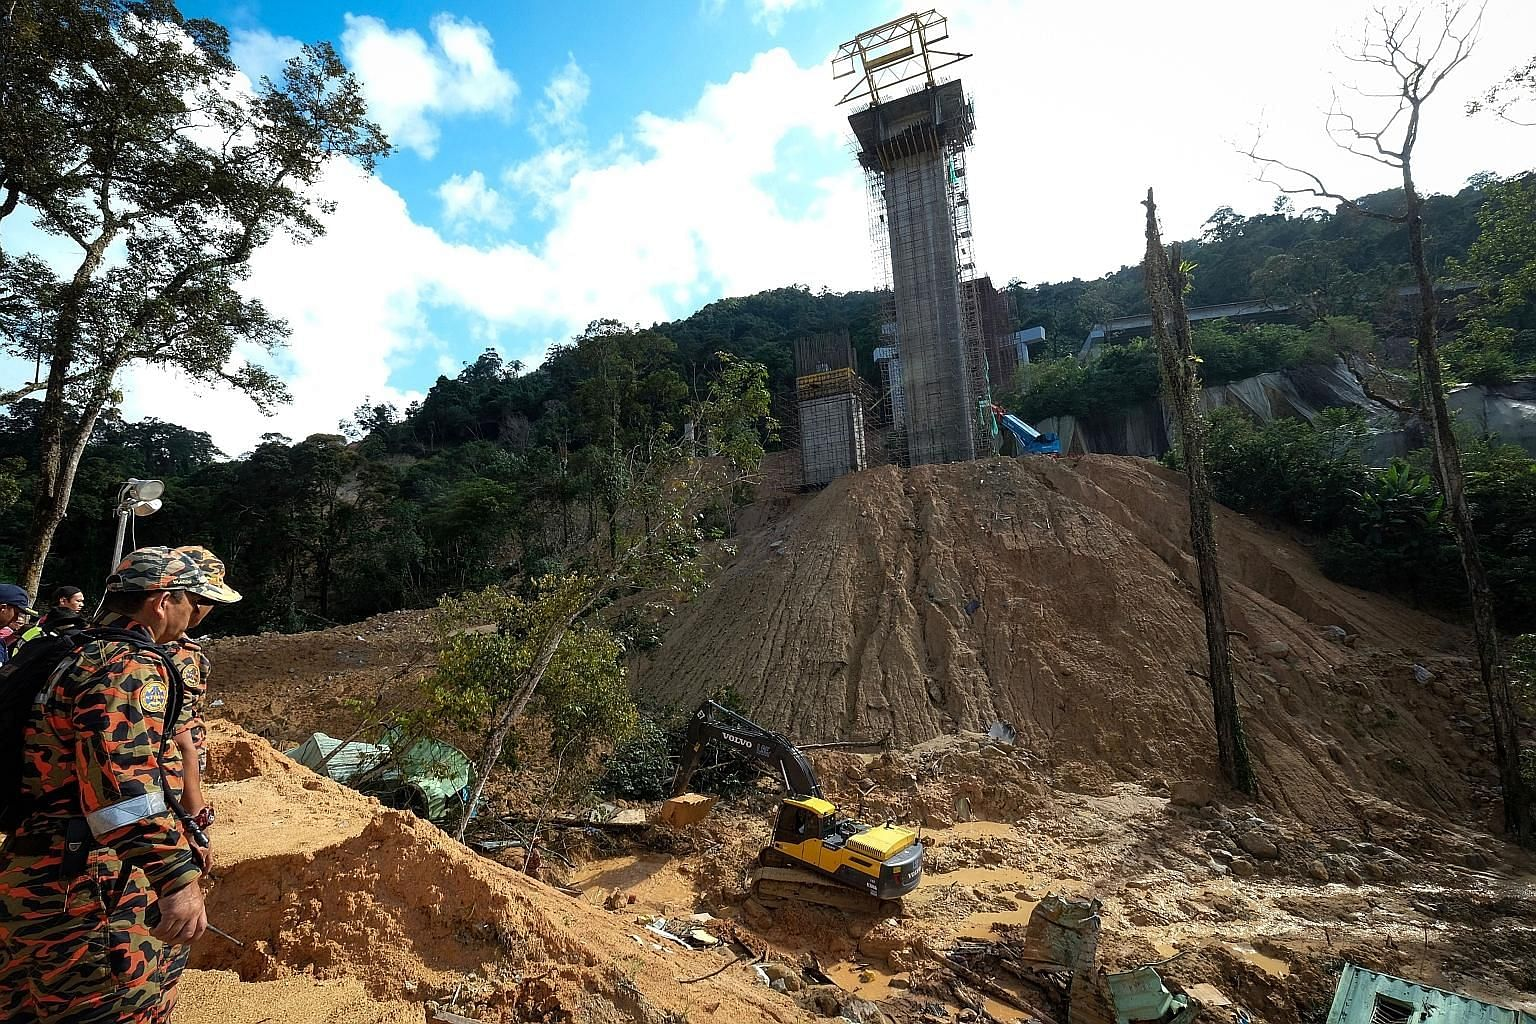 Search and rescue operations yesterday at a construction site hit by a landslide in Penang. It is believed that construction sites are not following the soil erosion mitigation plan stipulated in their project approvals.